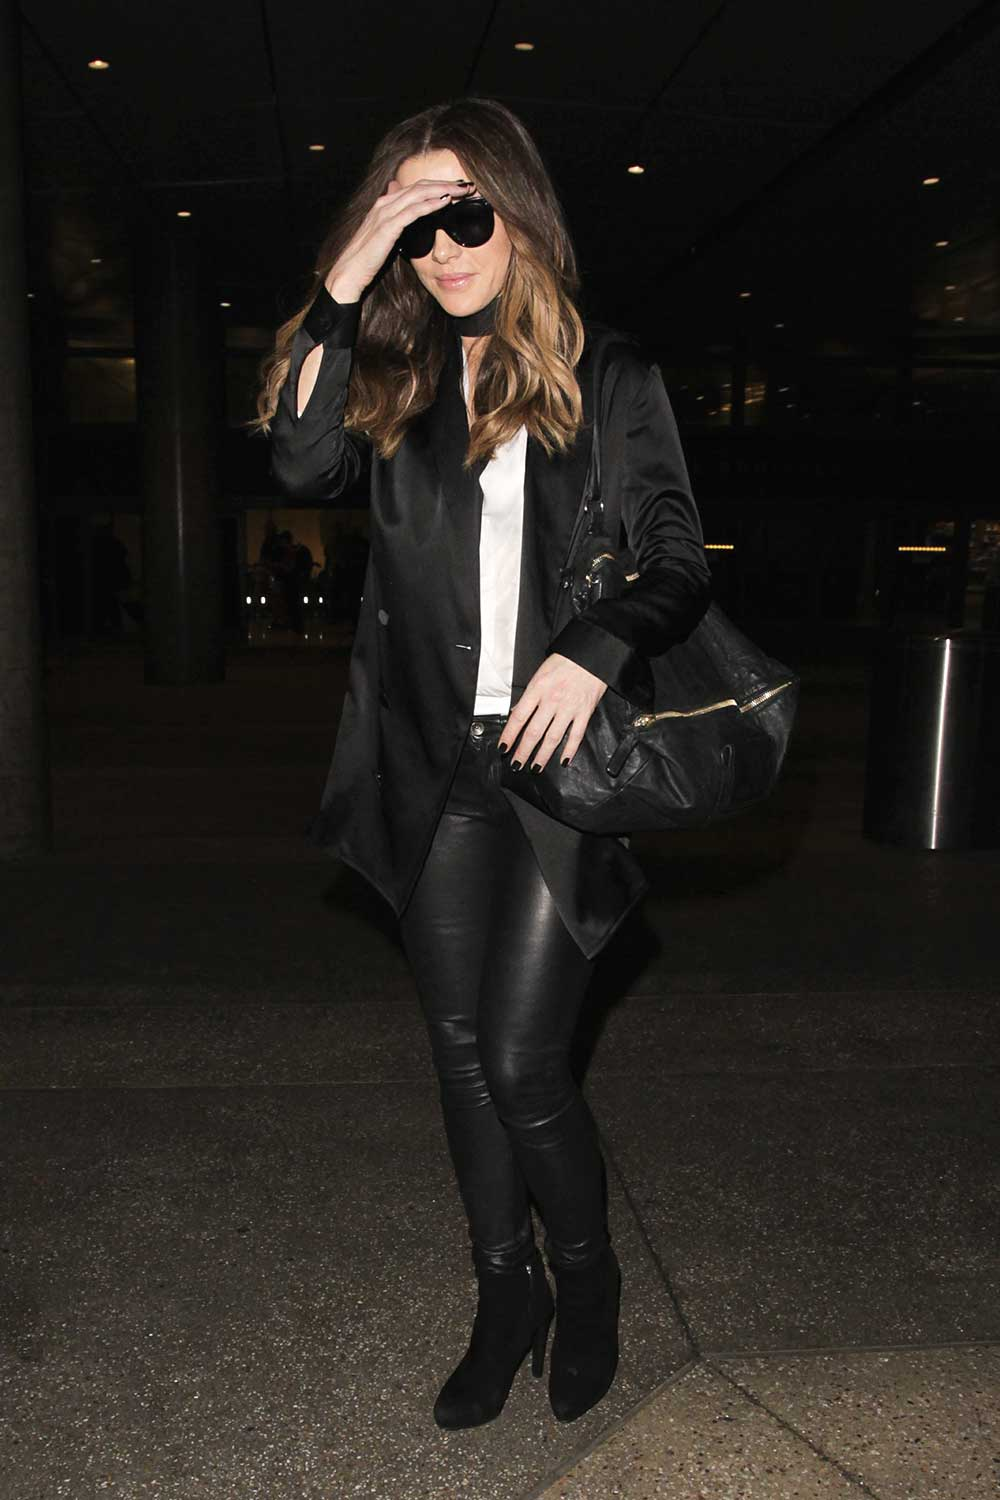 Kate Beckinsale arrives at LAX Airport - Leather Celebrities